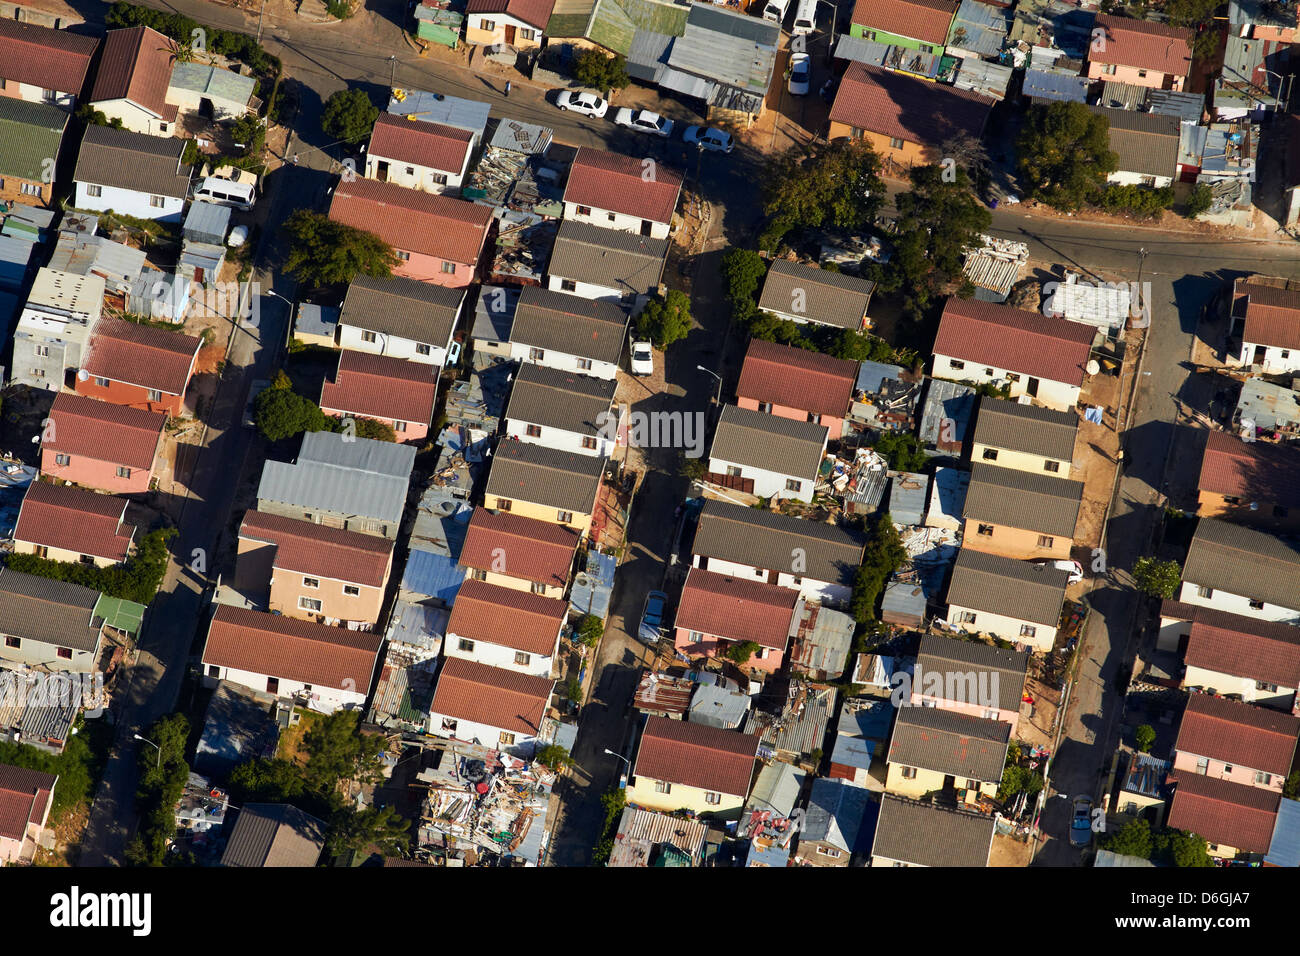 Imizamo Yethu township, Hout Bay, Cape Town, South Africa - aerial Stock Photo